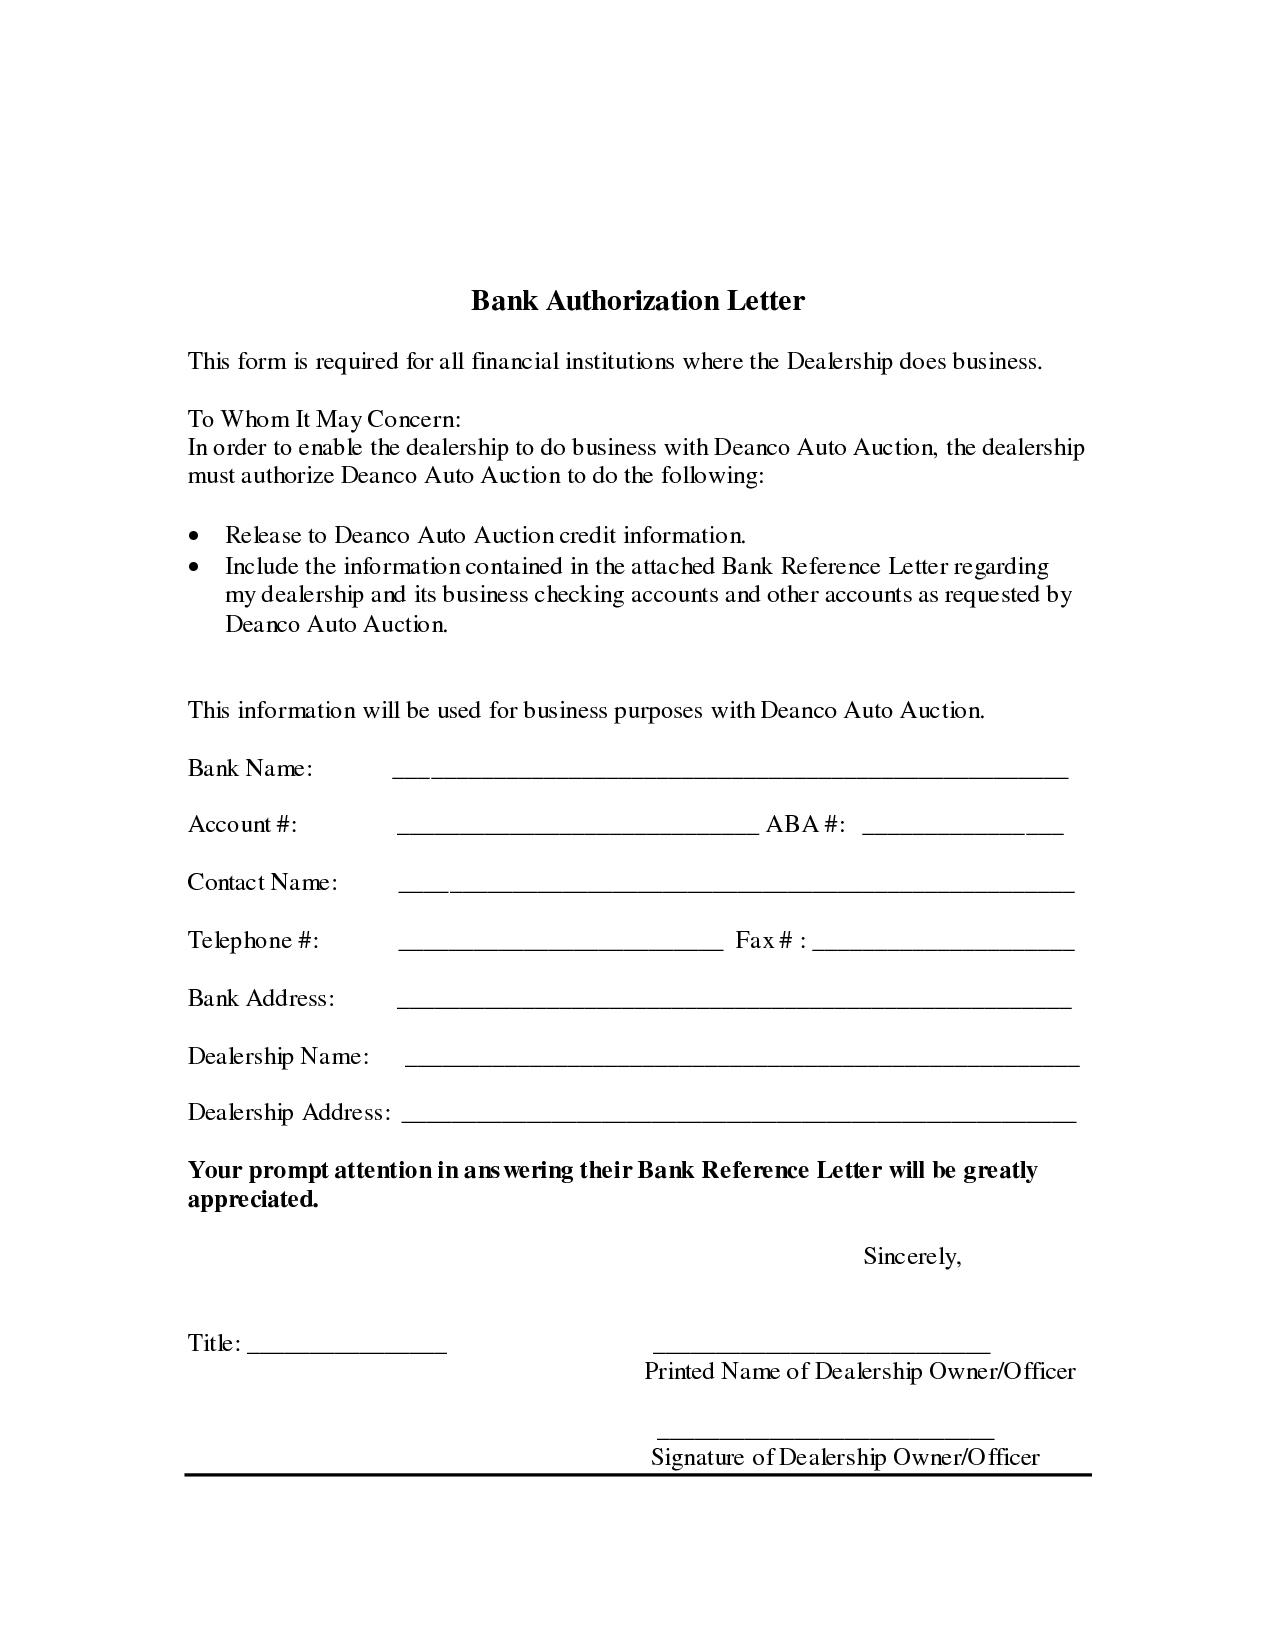 notarized letter of authorization template - authorization letter for bank writing a bank